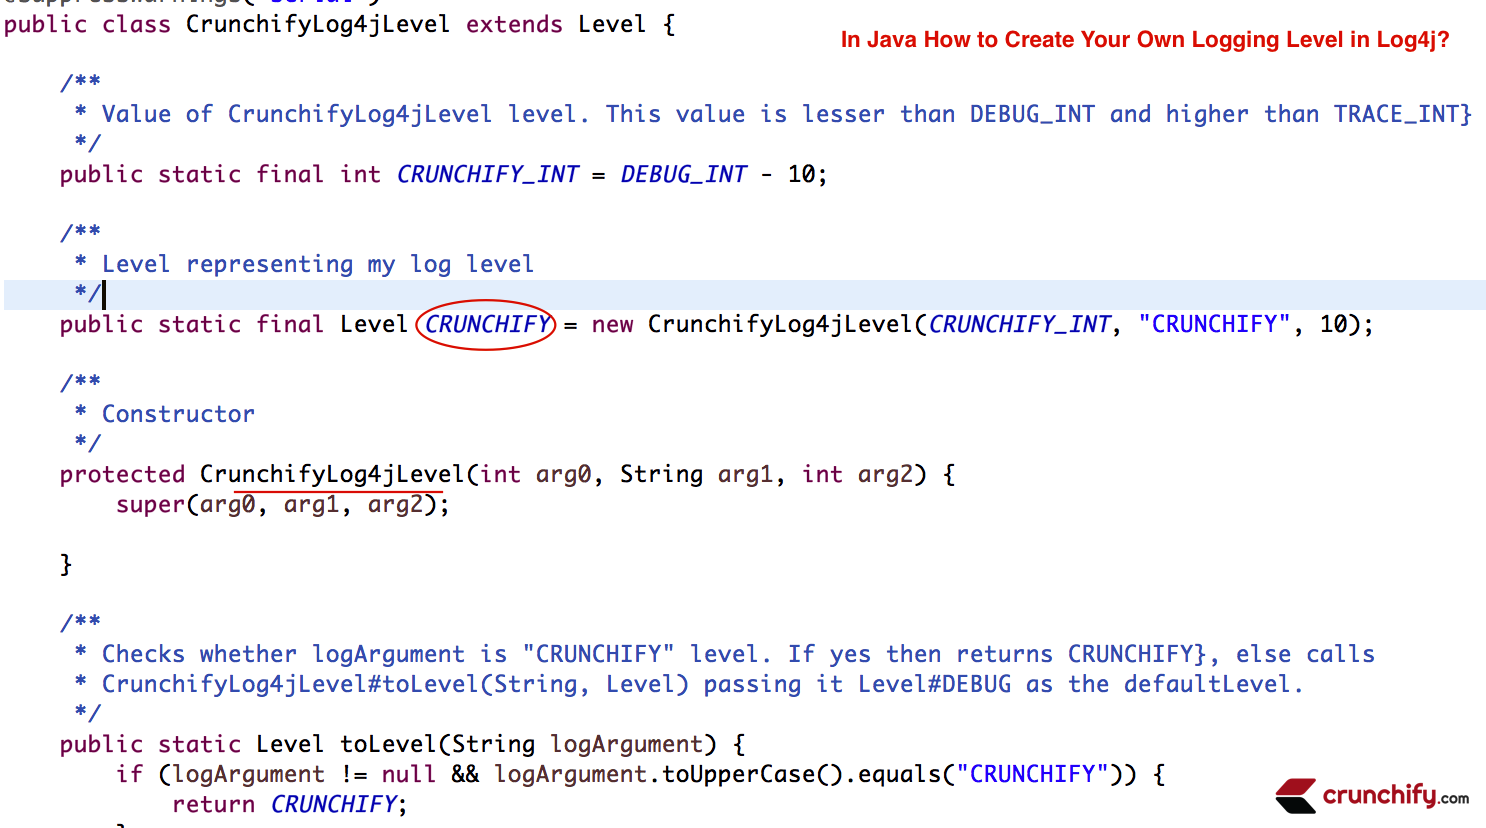 In Java How to Create your own Logging Level using Log4j